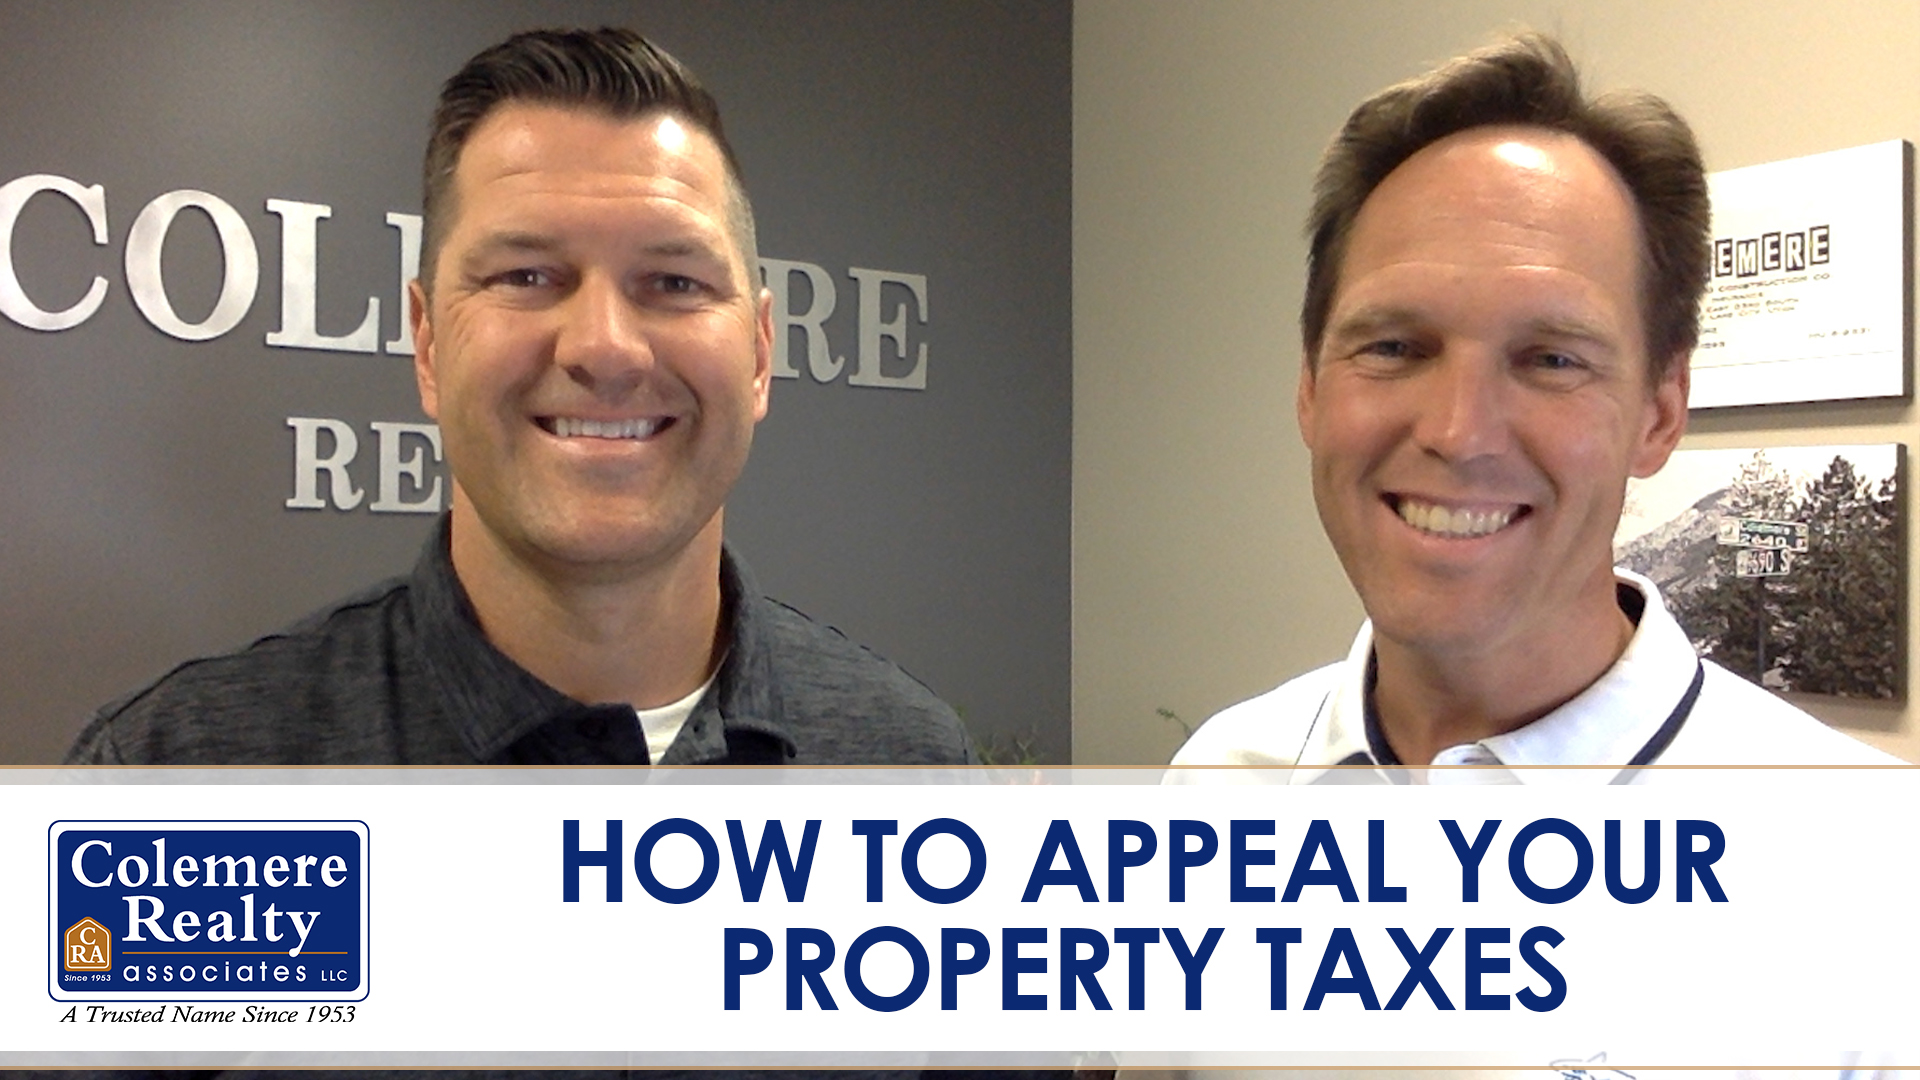 Should You Appeal Your Property Tax Assessment?